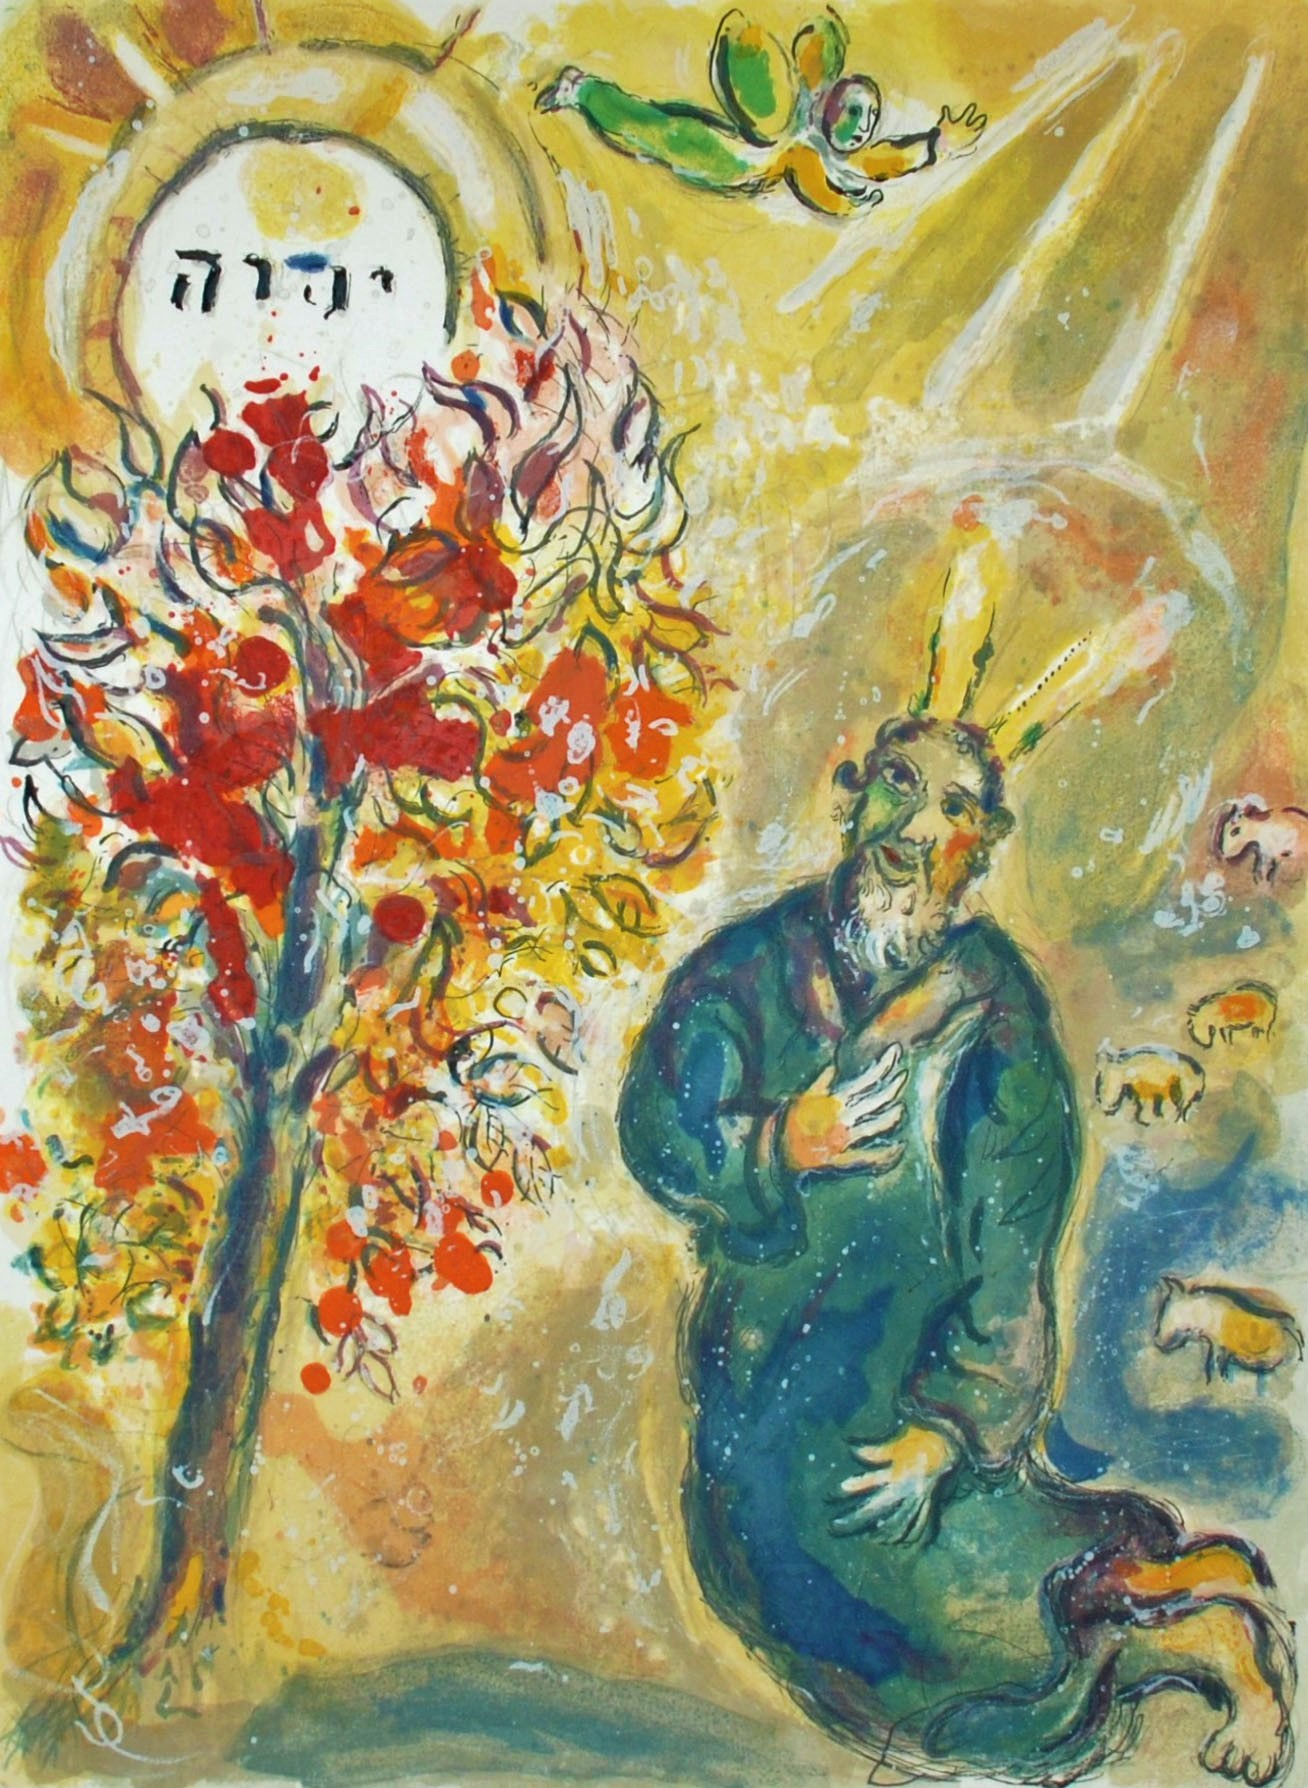 Moses and the Burning Busy, Marc Chagall, 1966.